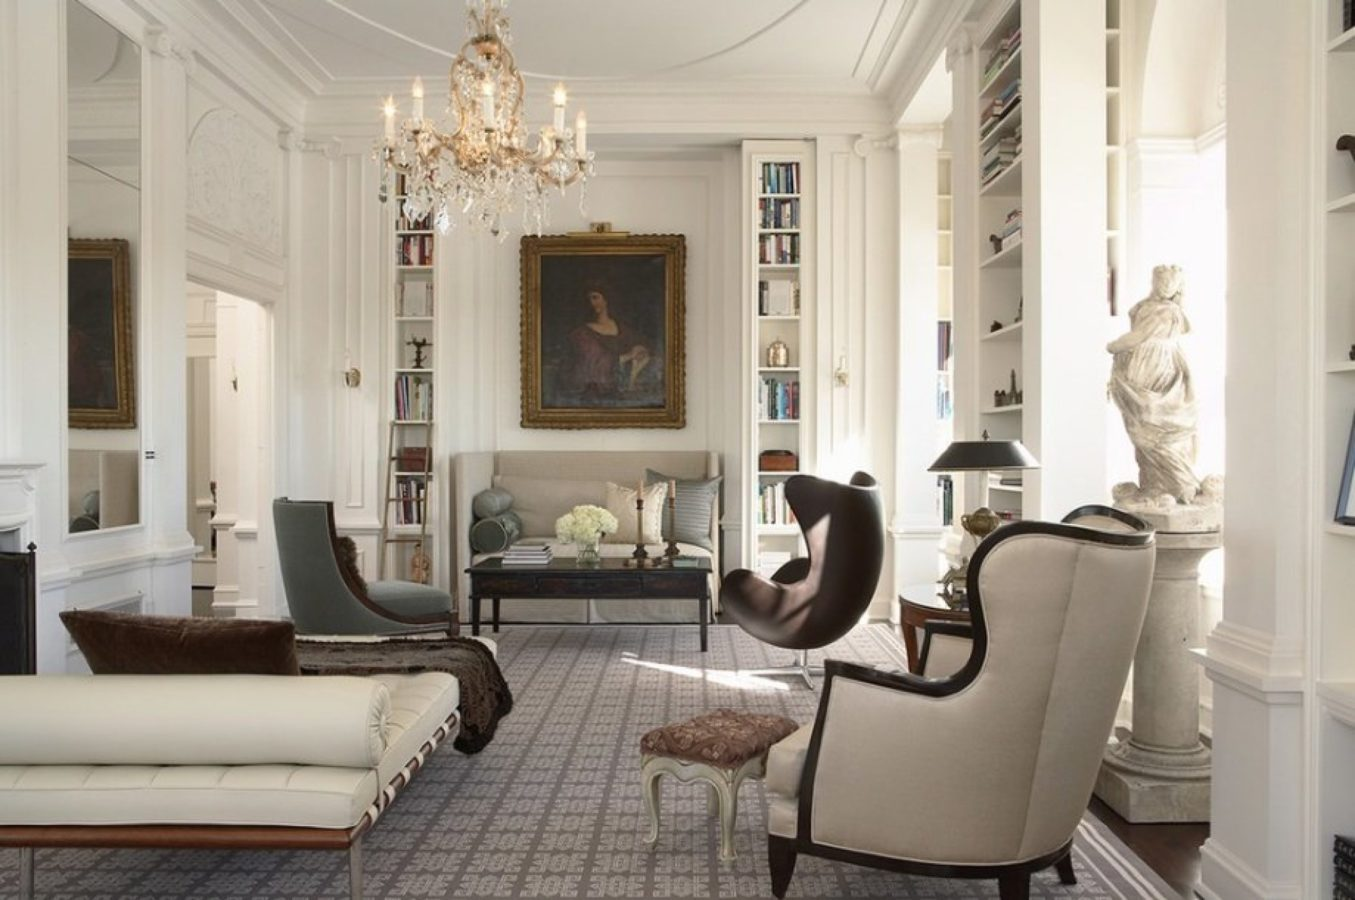 Modern Victorian Interior Design Elements To Luxe Up Any Home